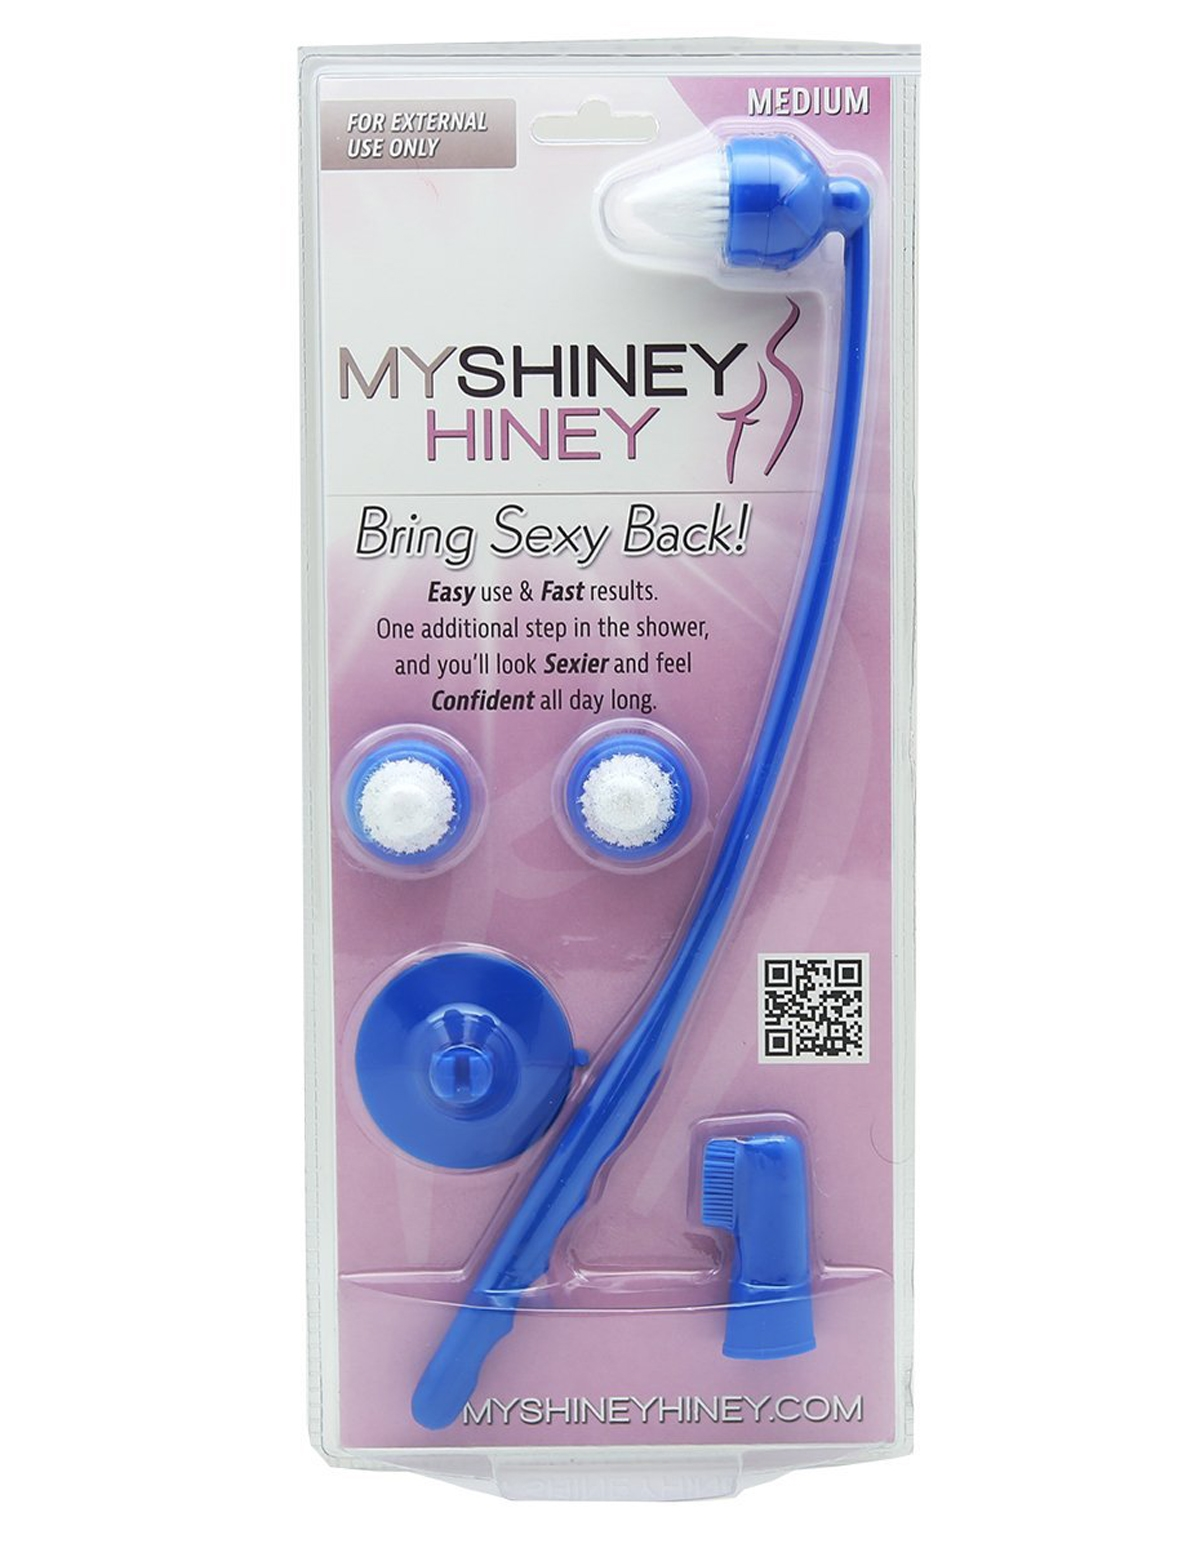 My Shiney Hiney Medium Applicator Brush